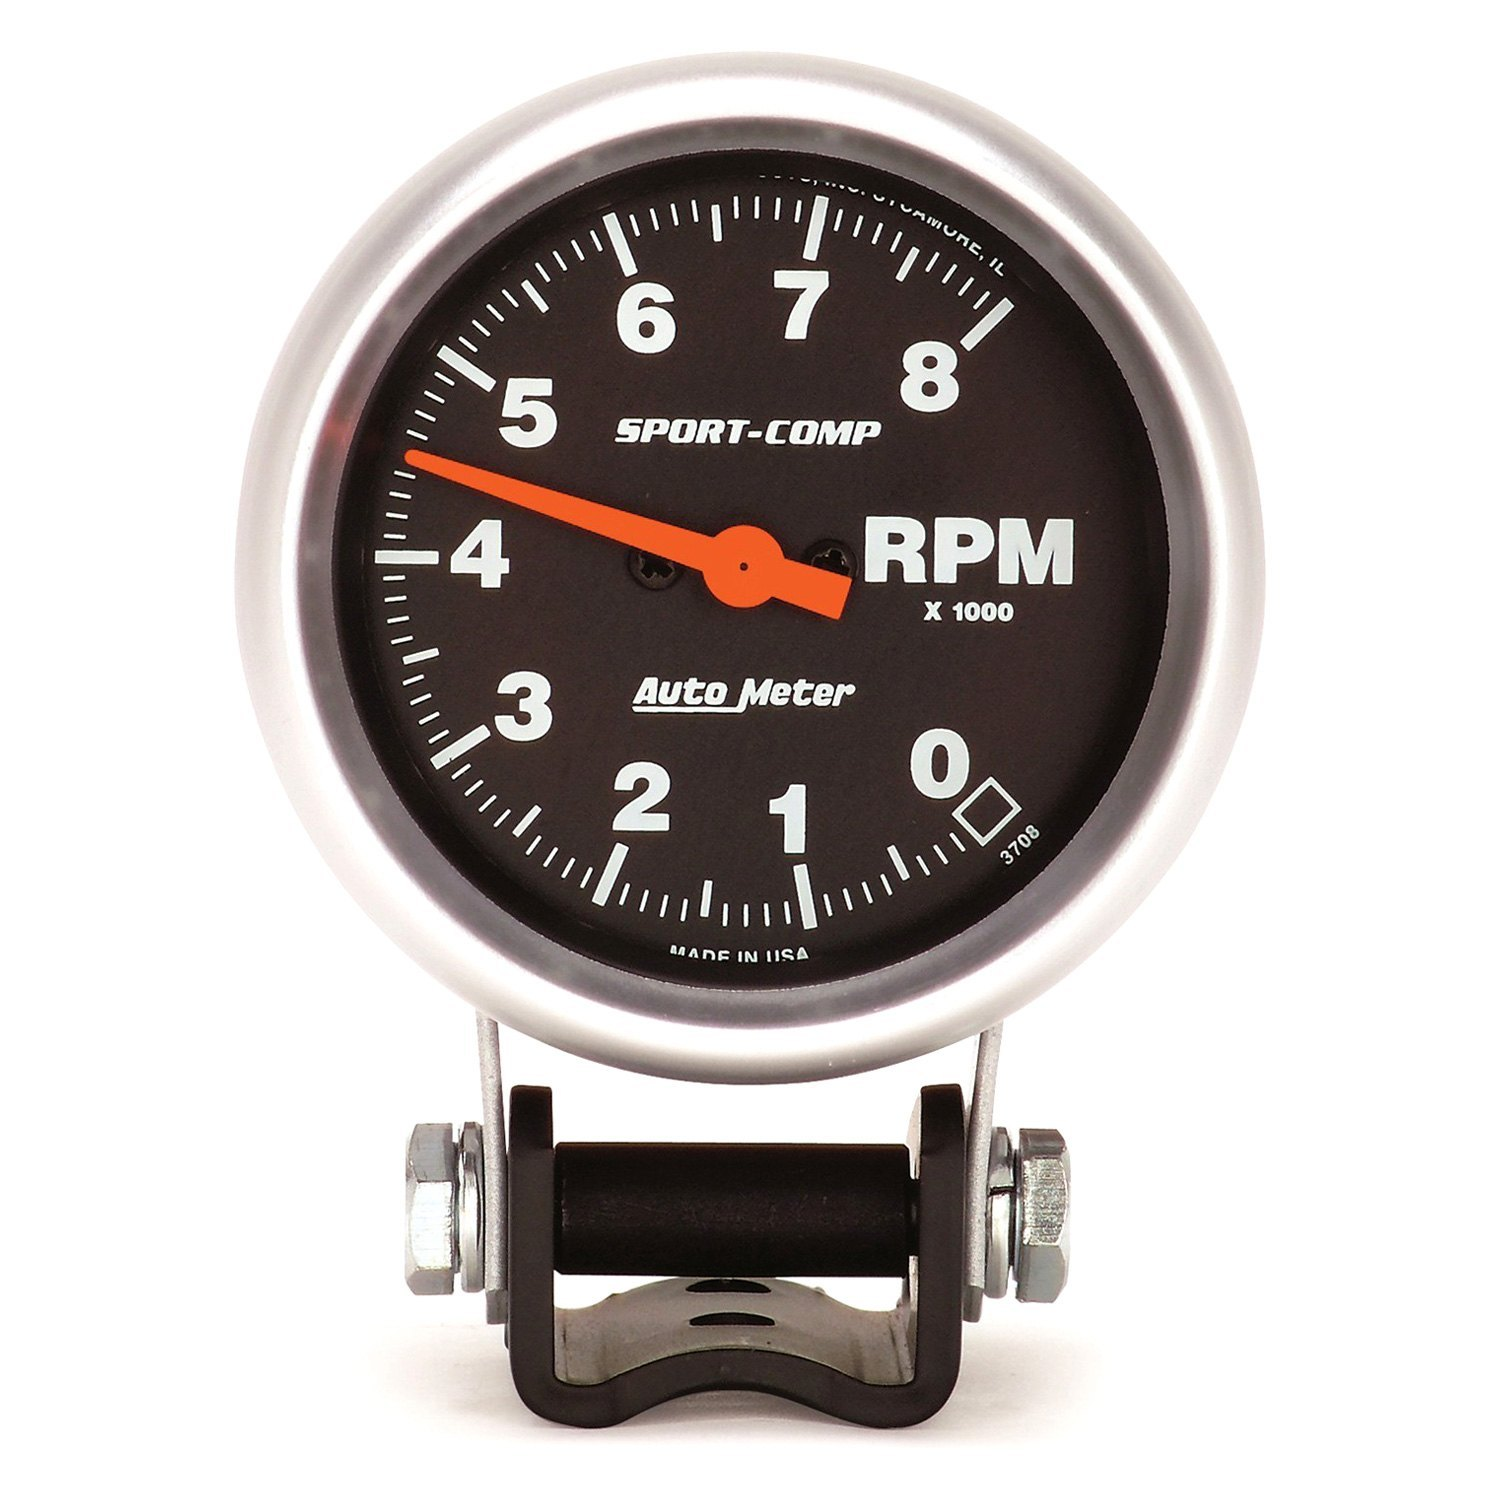 Auto Meter Tach Wiring 2098 Worksheet And Diagram Car Tachometer Sport Comp Rh Homesecurity Press Quick Autogage